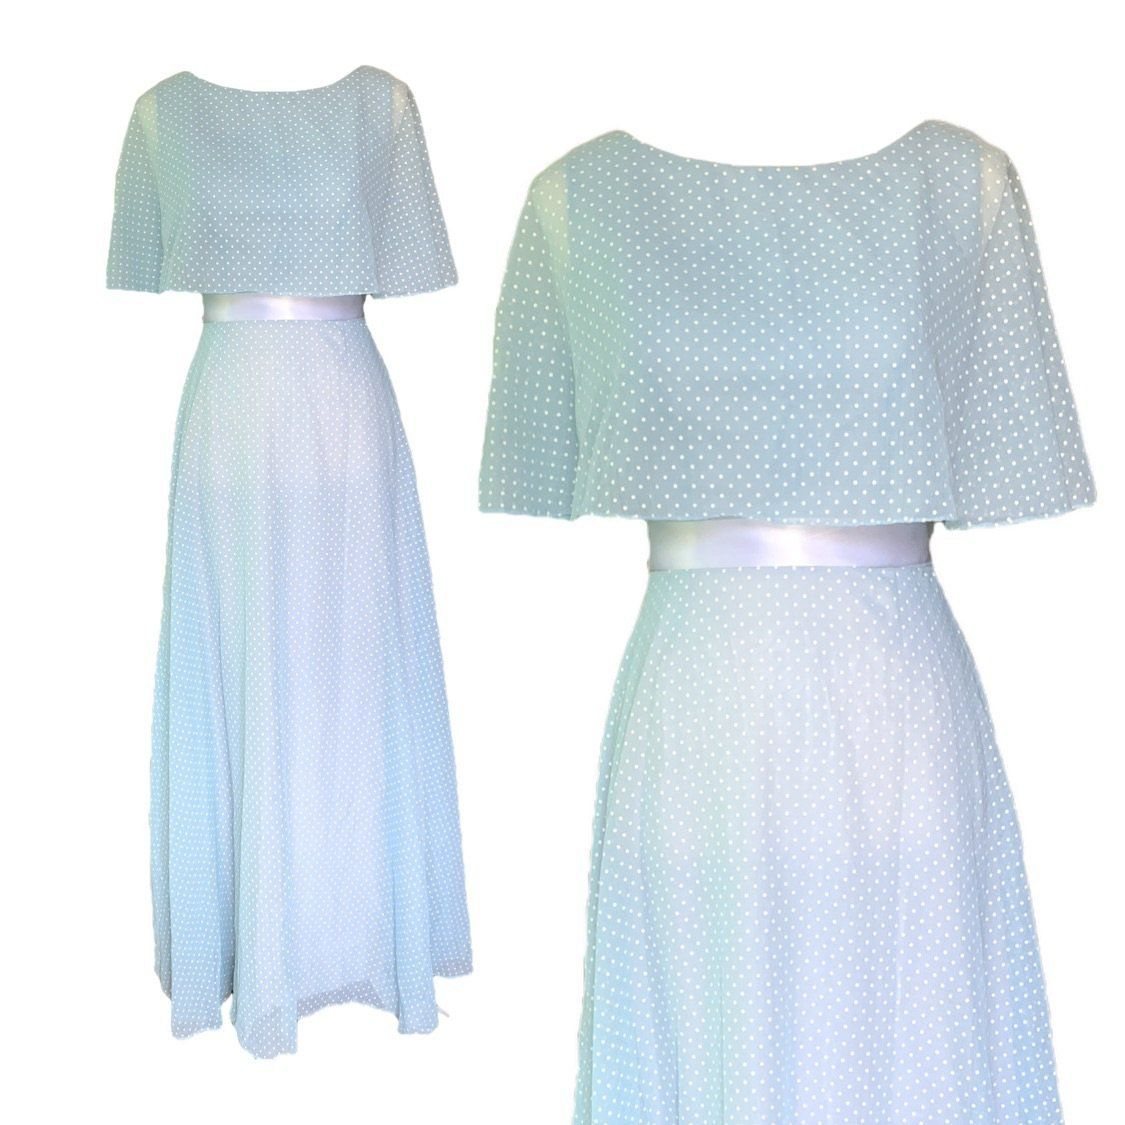 Vintage Polka Dot Dress and Capelet by Miss Elliette. Classic Baby Blue with White Polka Dots.